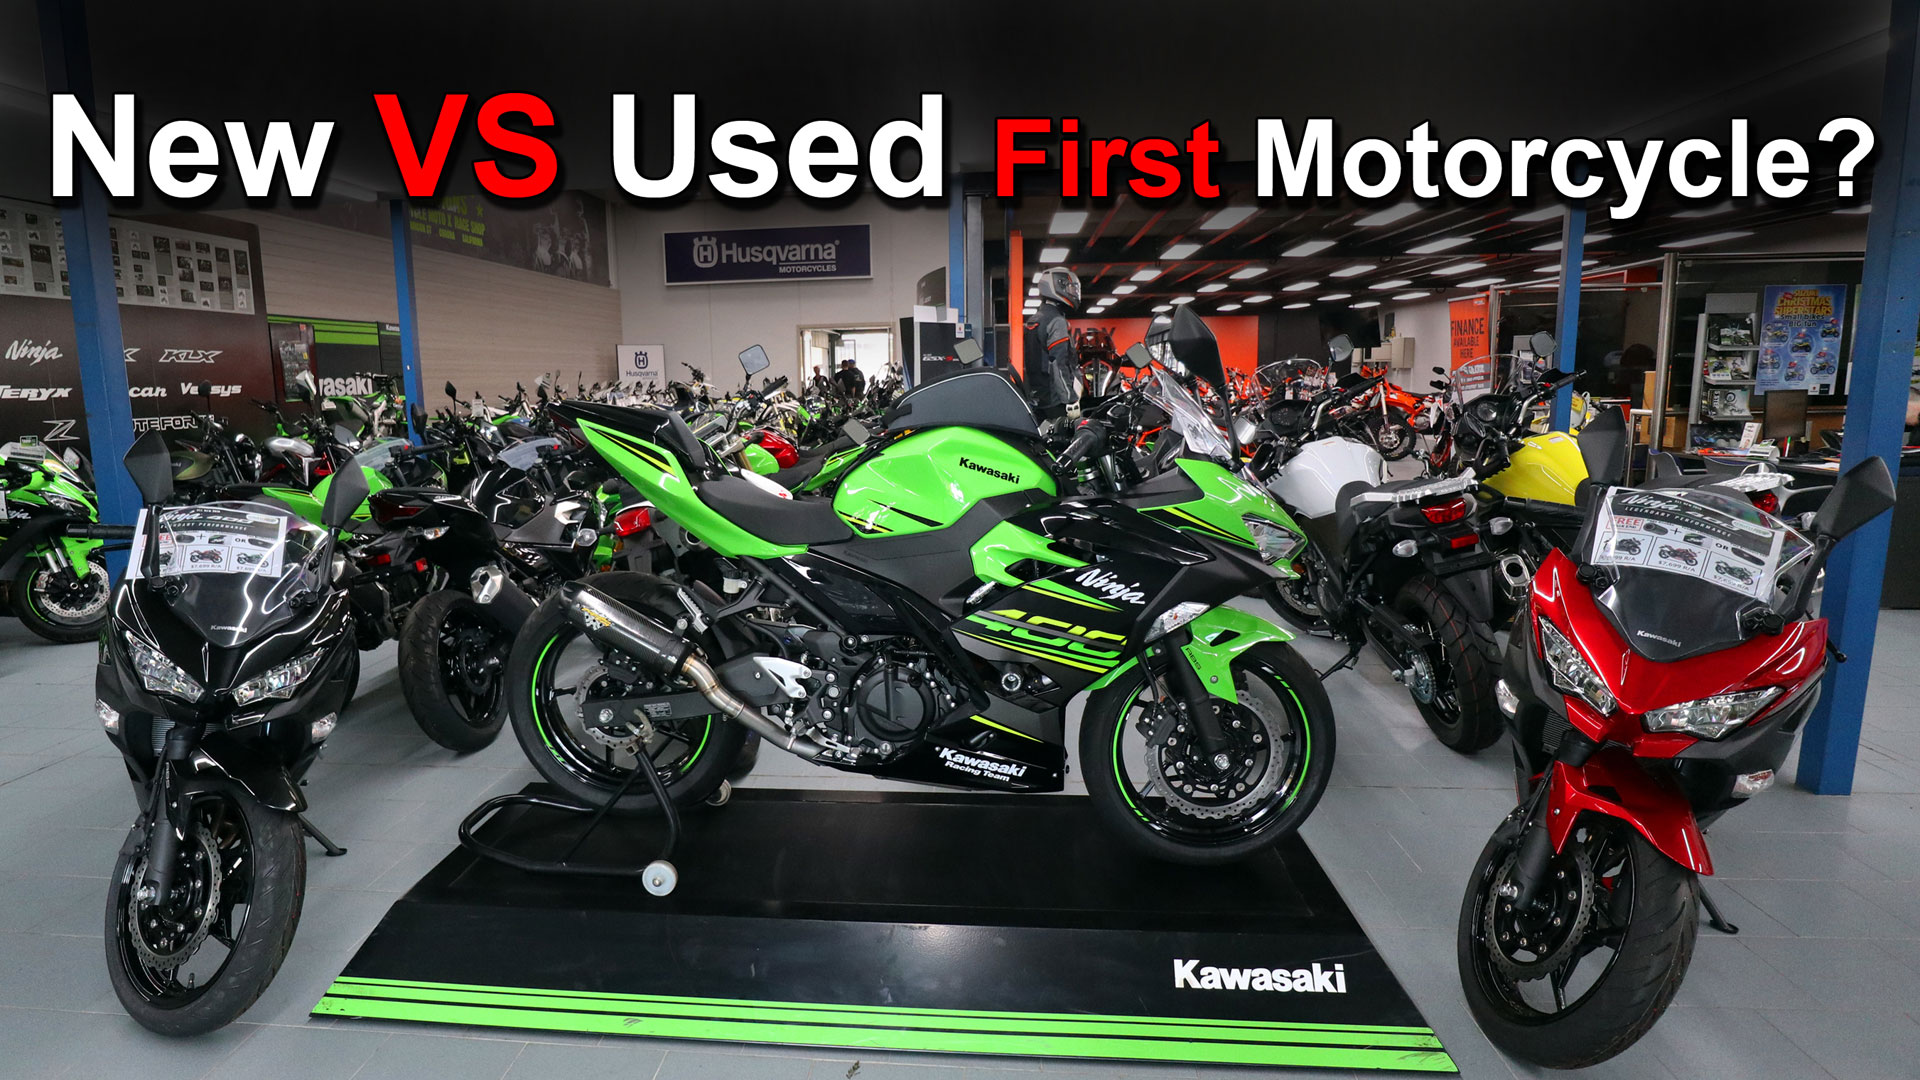 Buying your first motorcycle - New or Used?